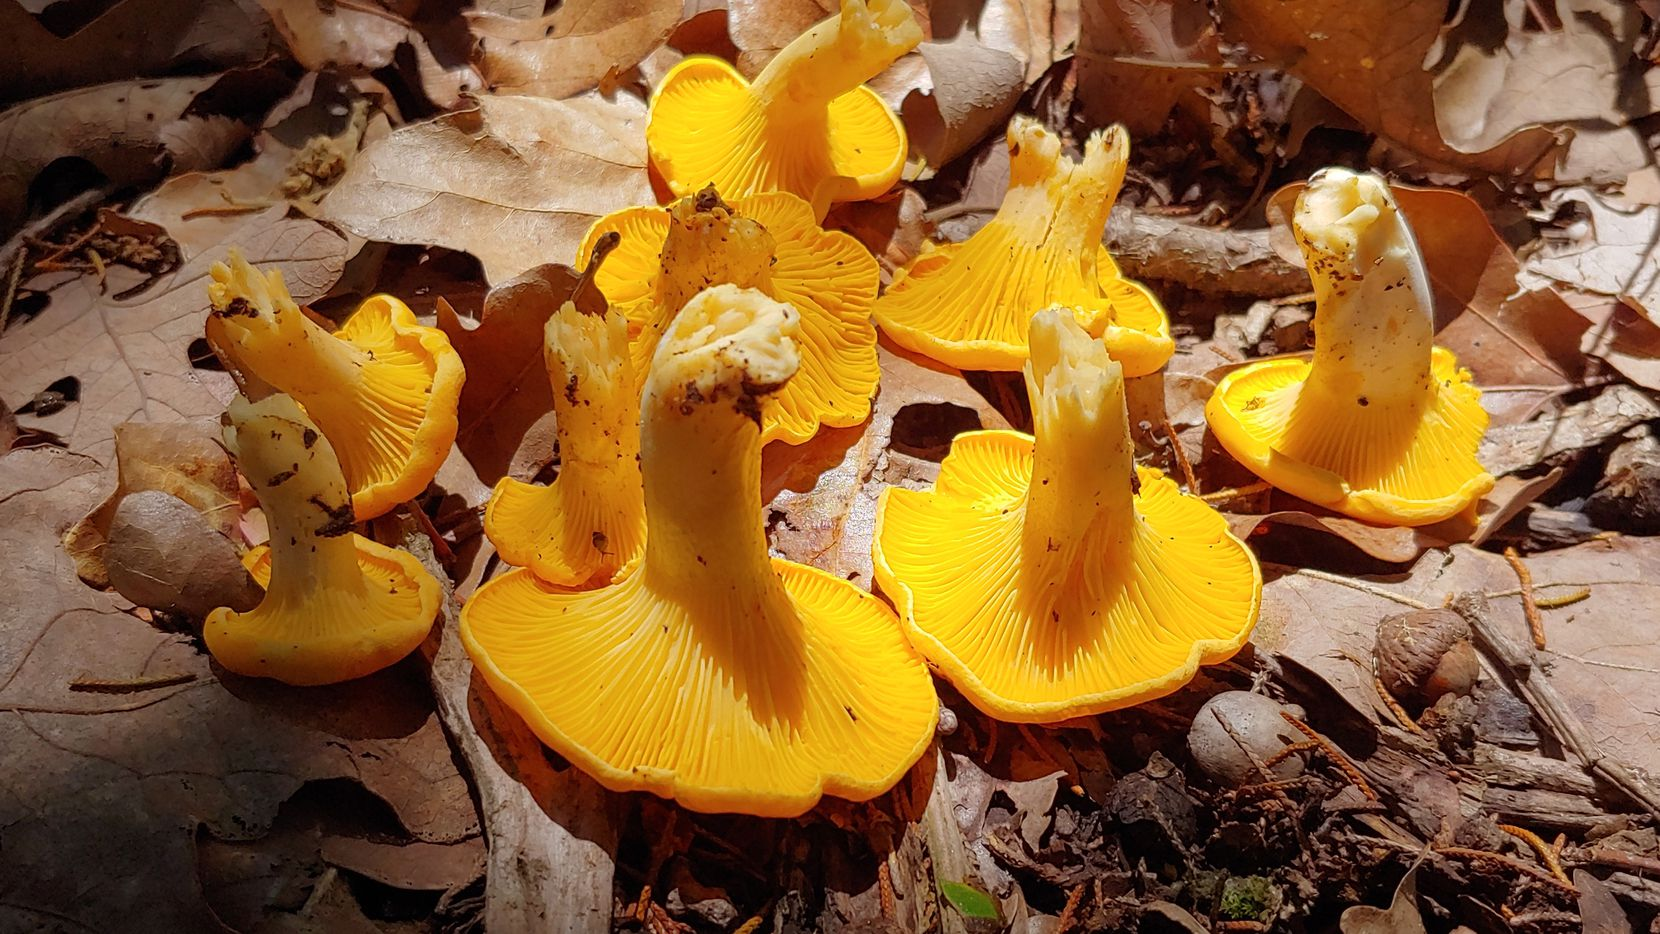 Pinching edible chanterelle mushrooms at their base helps keep their false gills clean of dirt and debris, a trick that makes cooking preparation much easier.